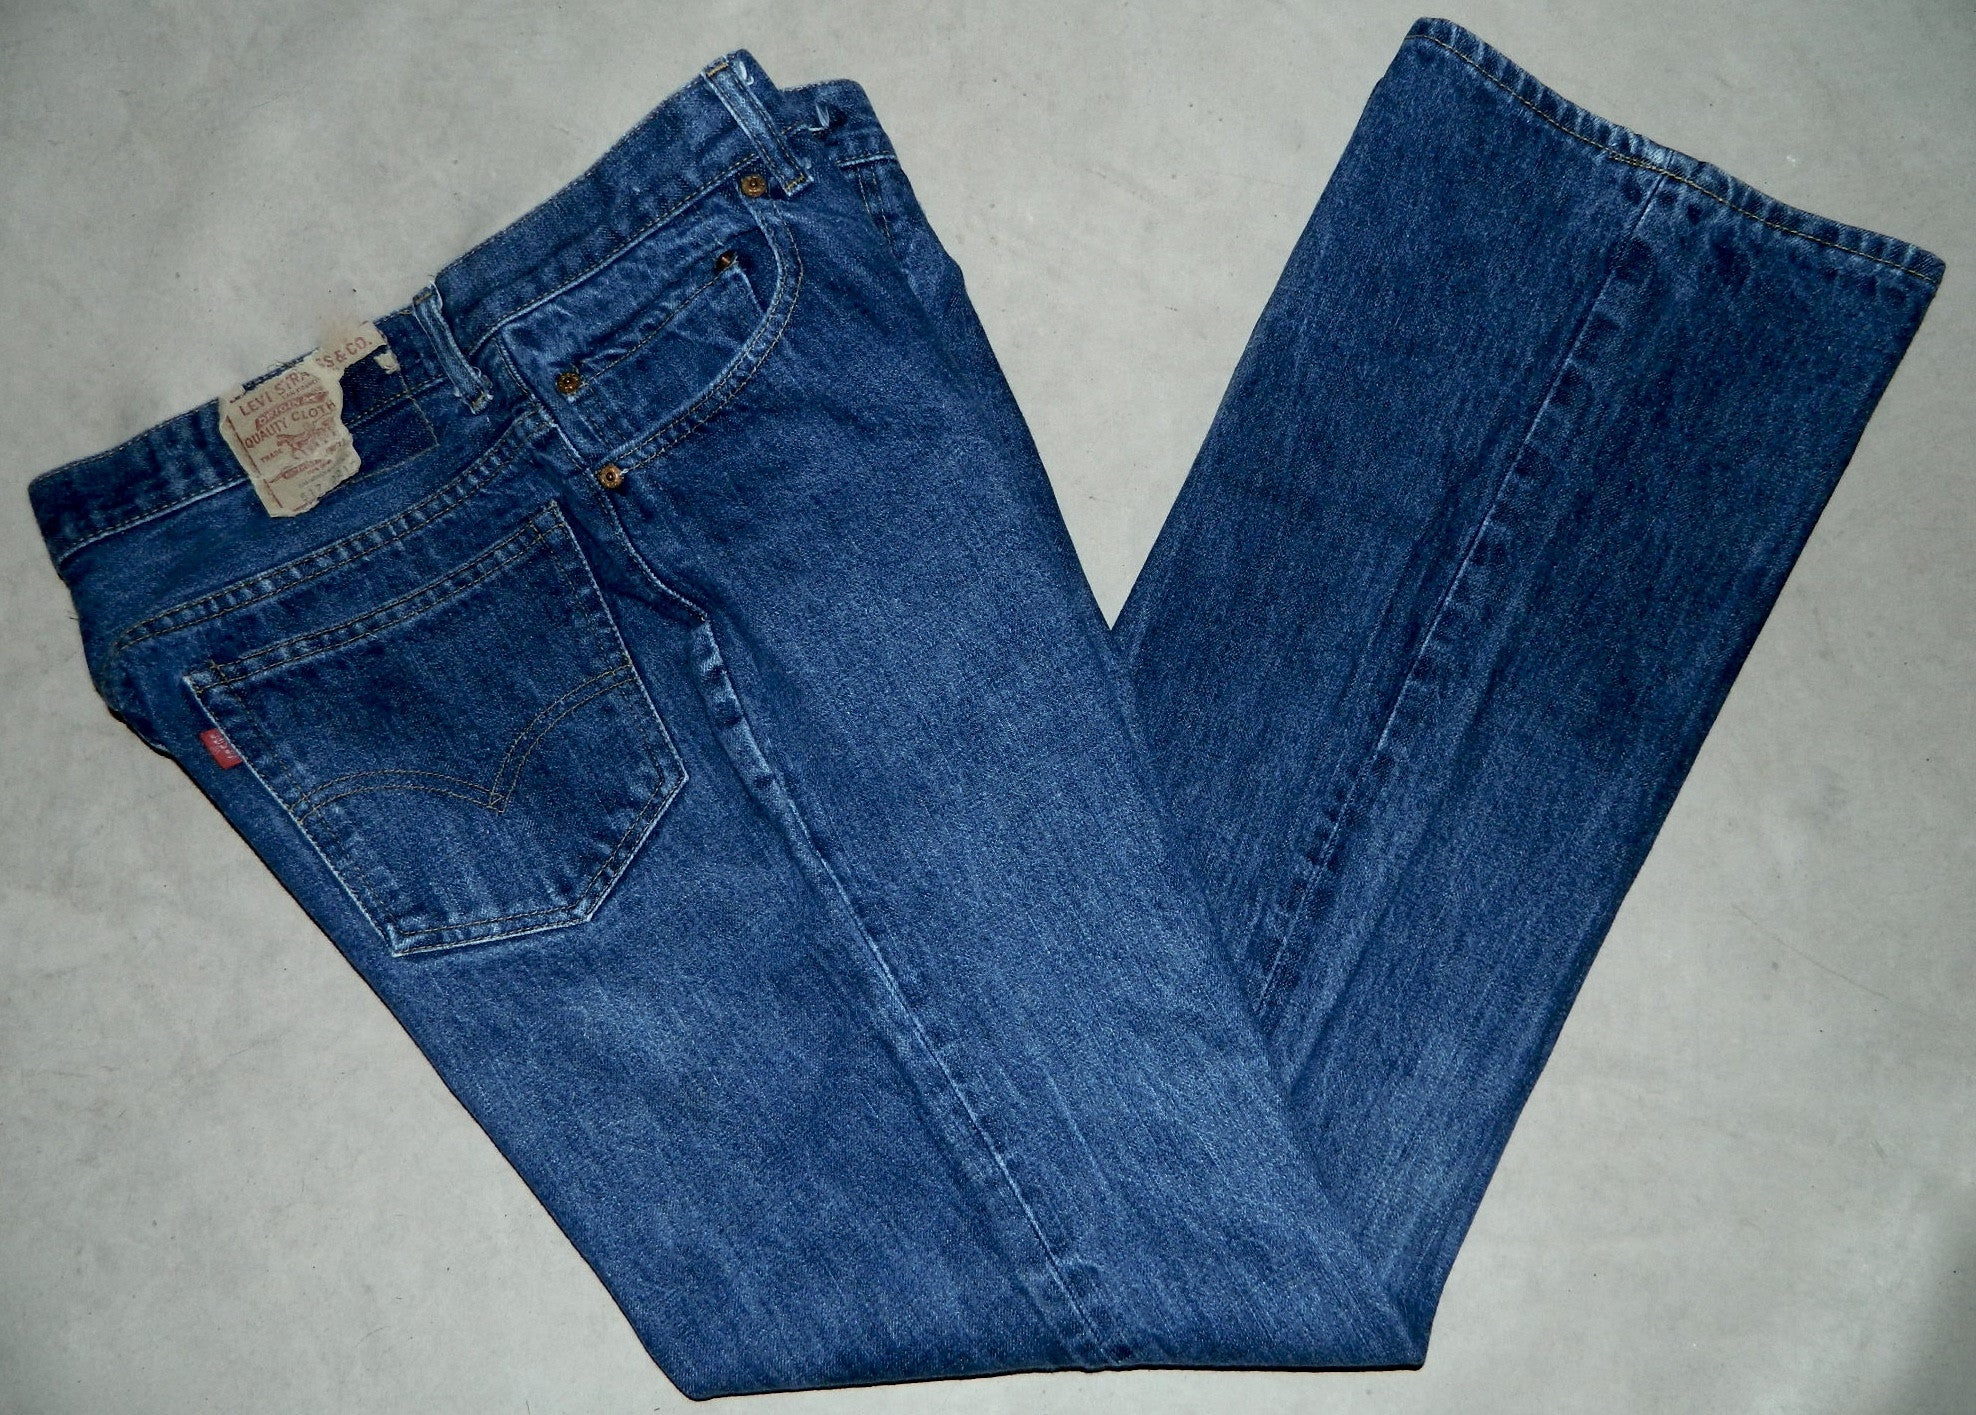 vintage 1980s jeans LEVI'S 517 boot cut dark denim 36 x 31